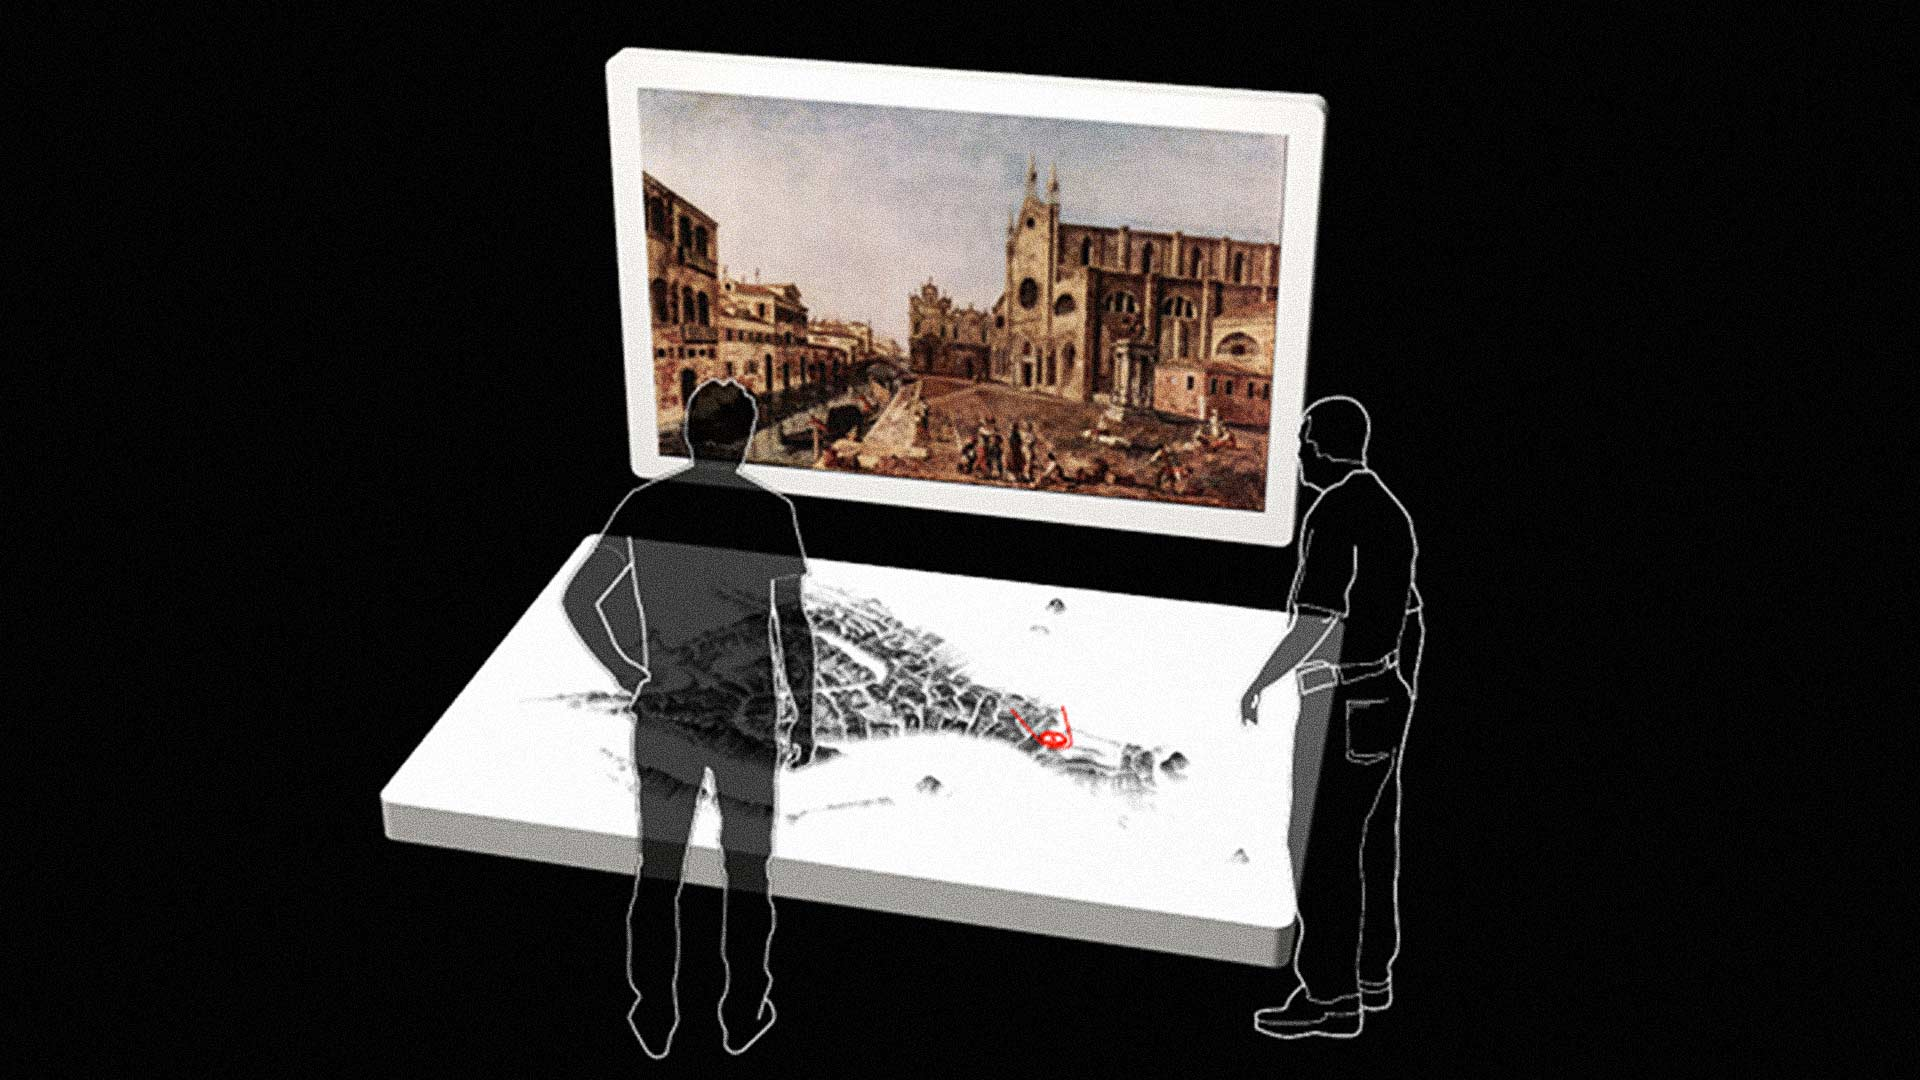 Frederic Kaplan has built an information-lush time machine that will let the curious to travel through Venetian history.